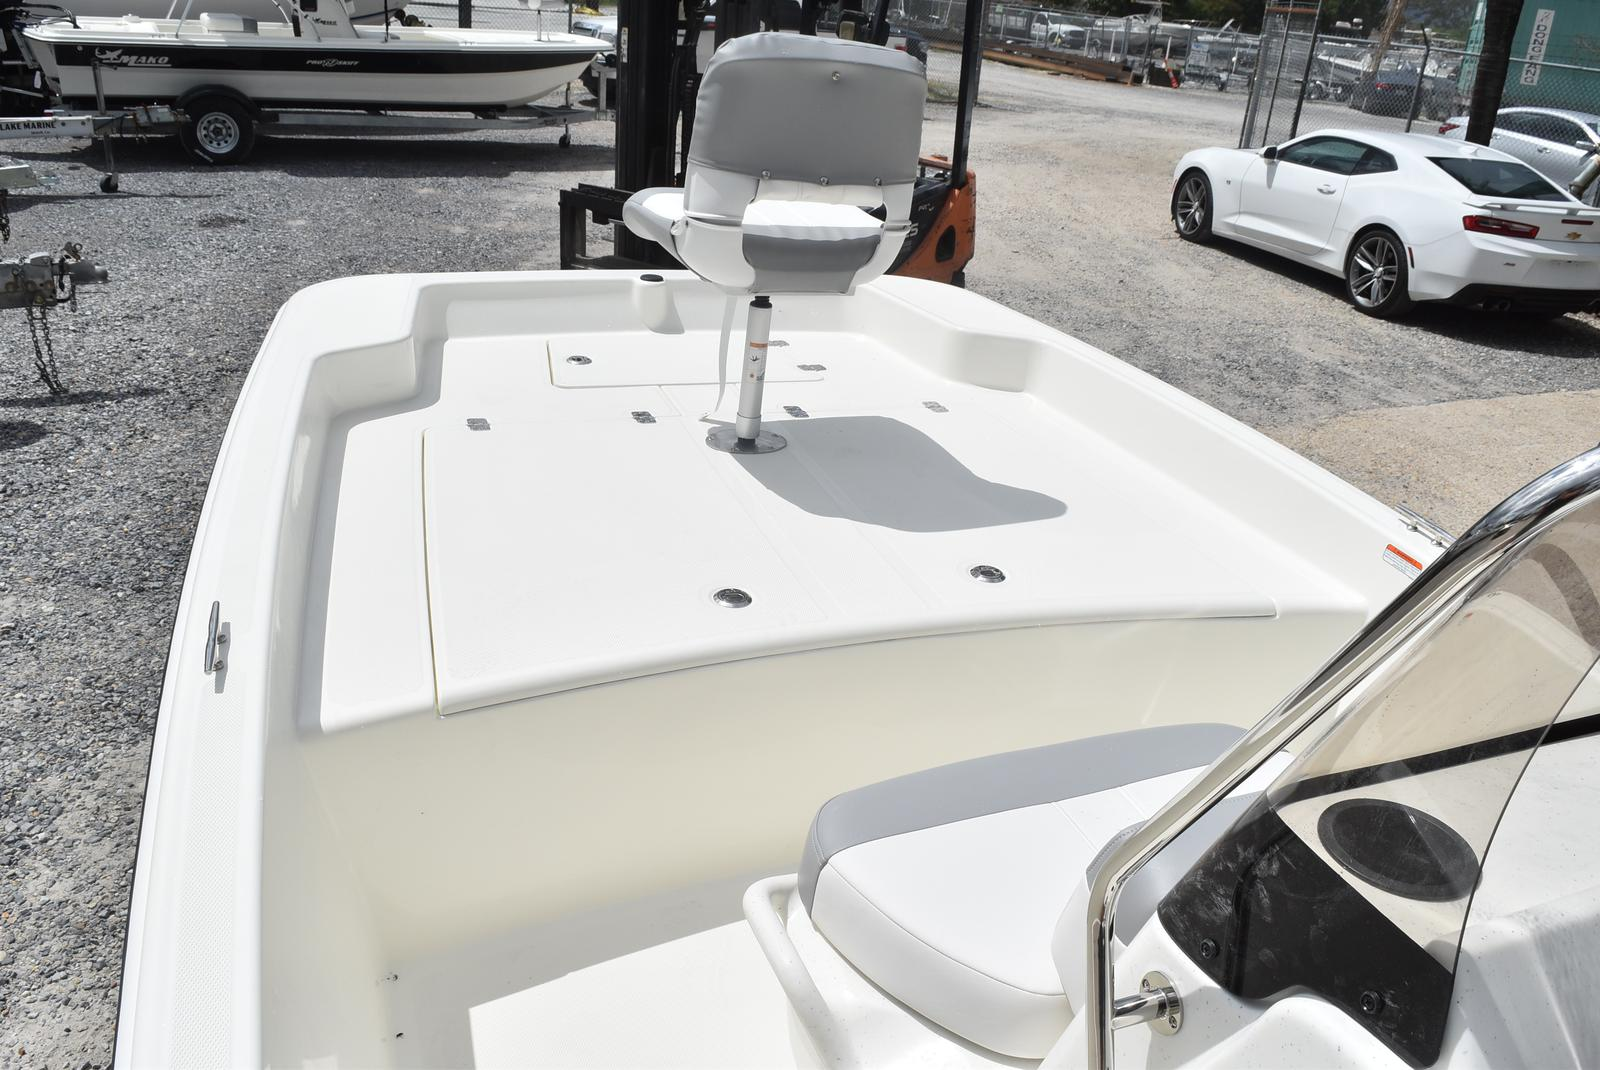 2020 Mako boat for sale, model of the boat is Pro Skiff 17, 75 ELPT & Image # 420 of 702